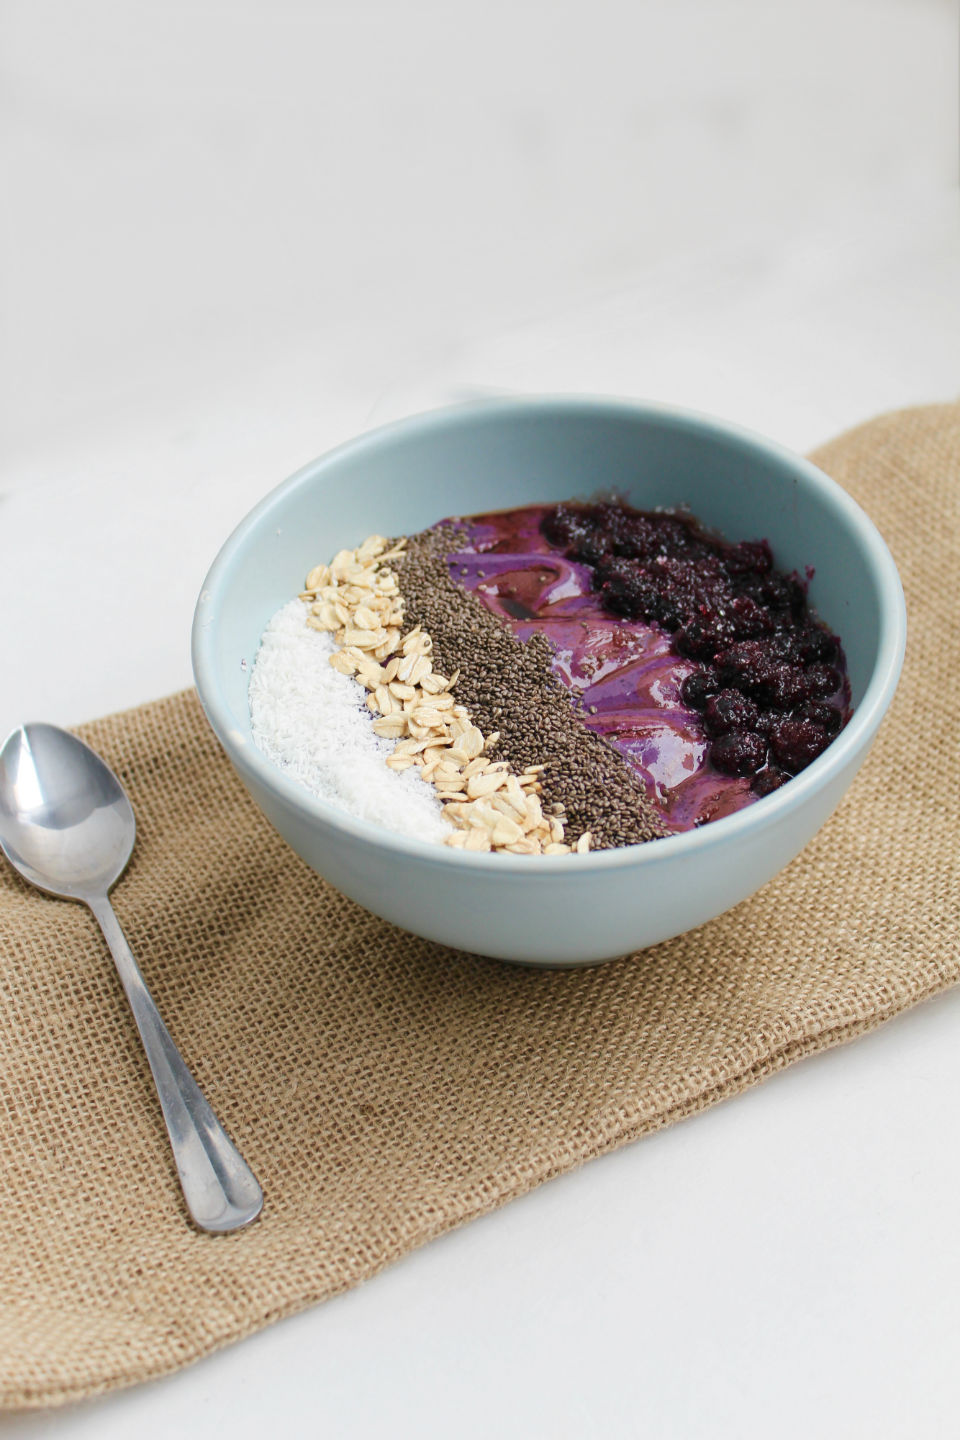 Wild Blueberry and Balsamic Smoothie Bowl Recipe -- A healthy breakfast bowl gets a unique twist with a splash of balsamic vinegar. You'll love the sweet and tangy combo! | @sinfulnutrition @wildbberries #vegan #glutenfree #ad #wildyoursmoothie